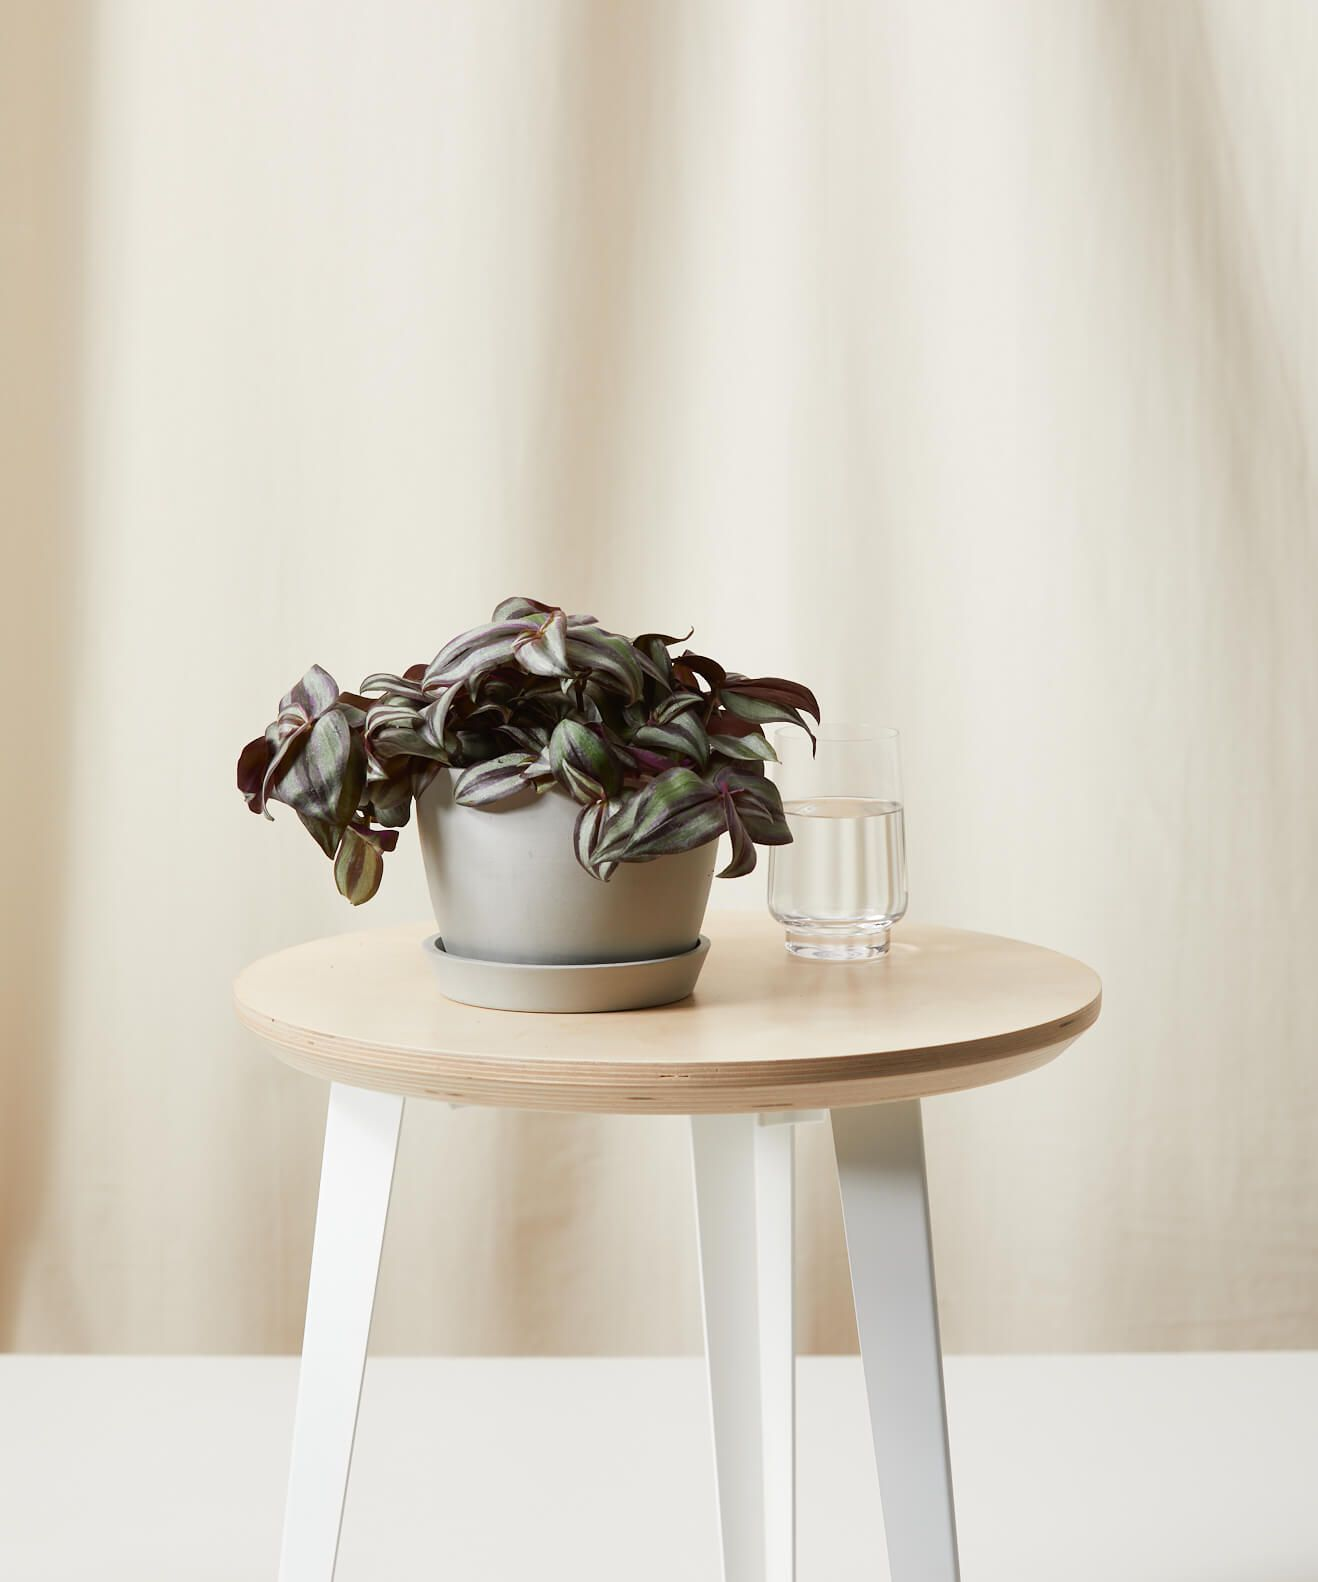 Inch plant on a wood stool